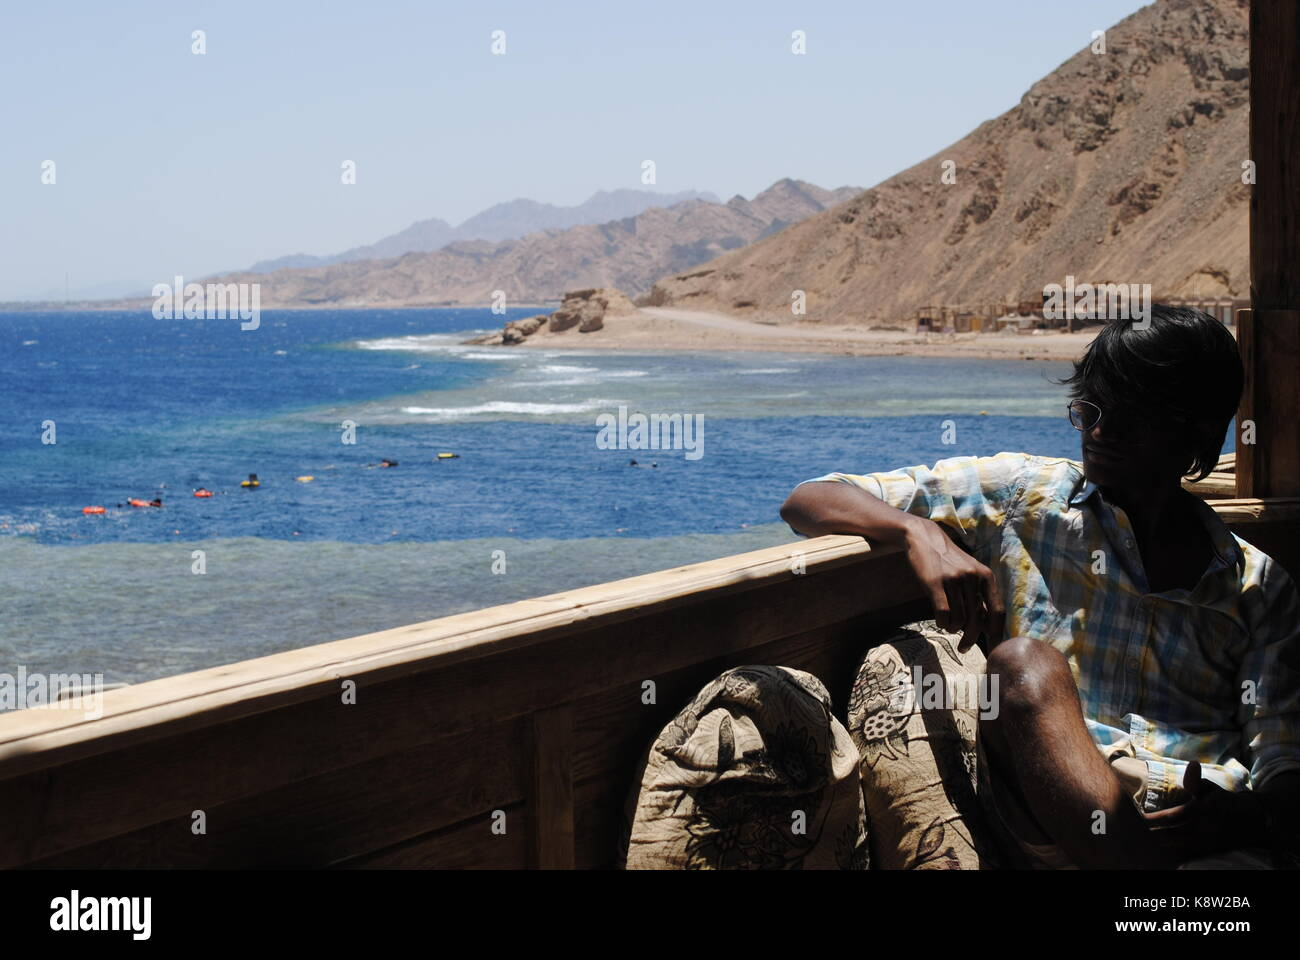 A view of the Blue hole in dahab. - Stock Image